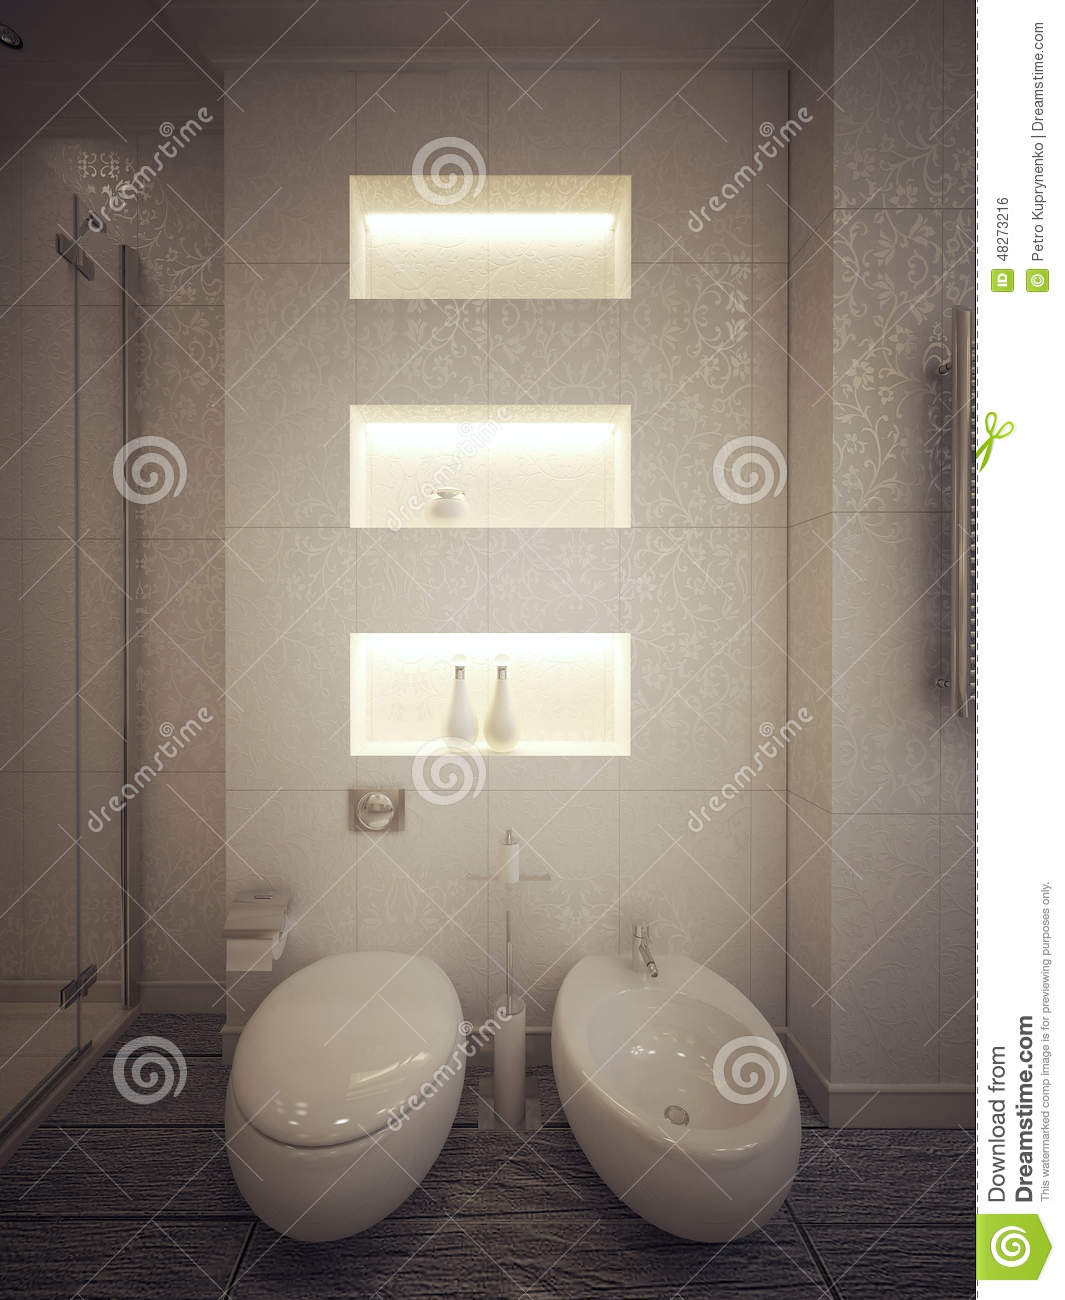 Toilet And Bidet Modern Style Stock Illustration Illustration Of - Amazing-toilets-and-bidets-collection-from-stile